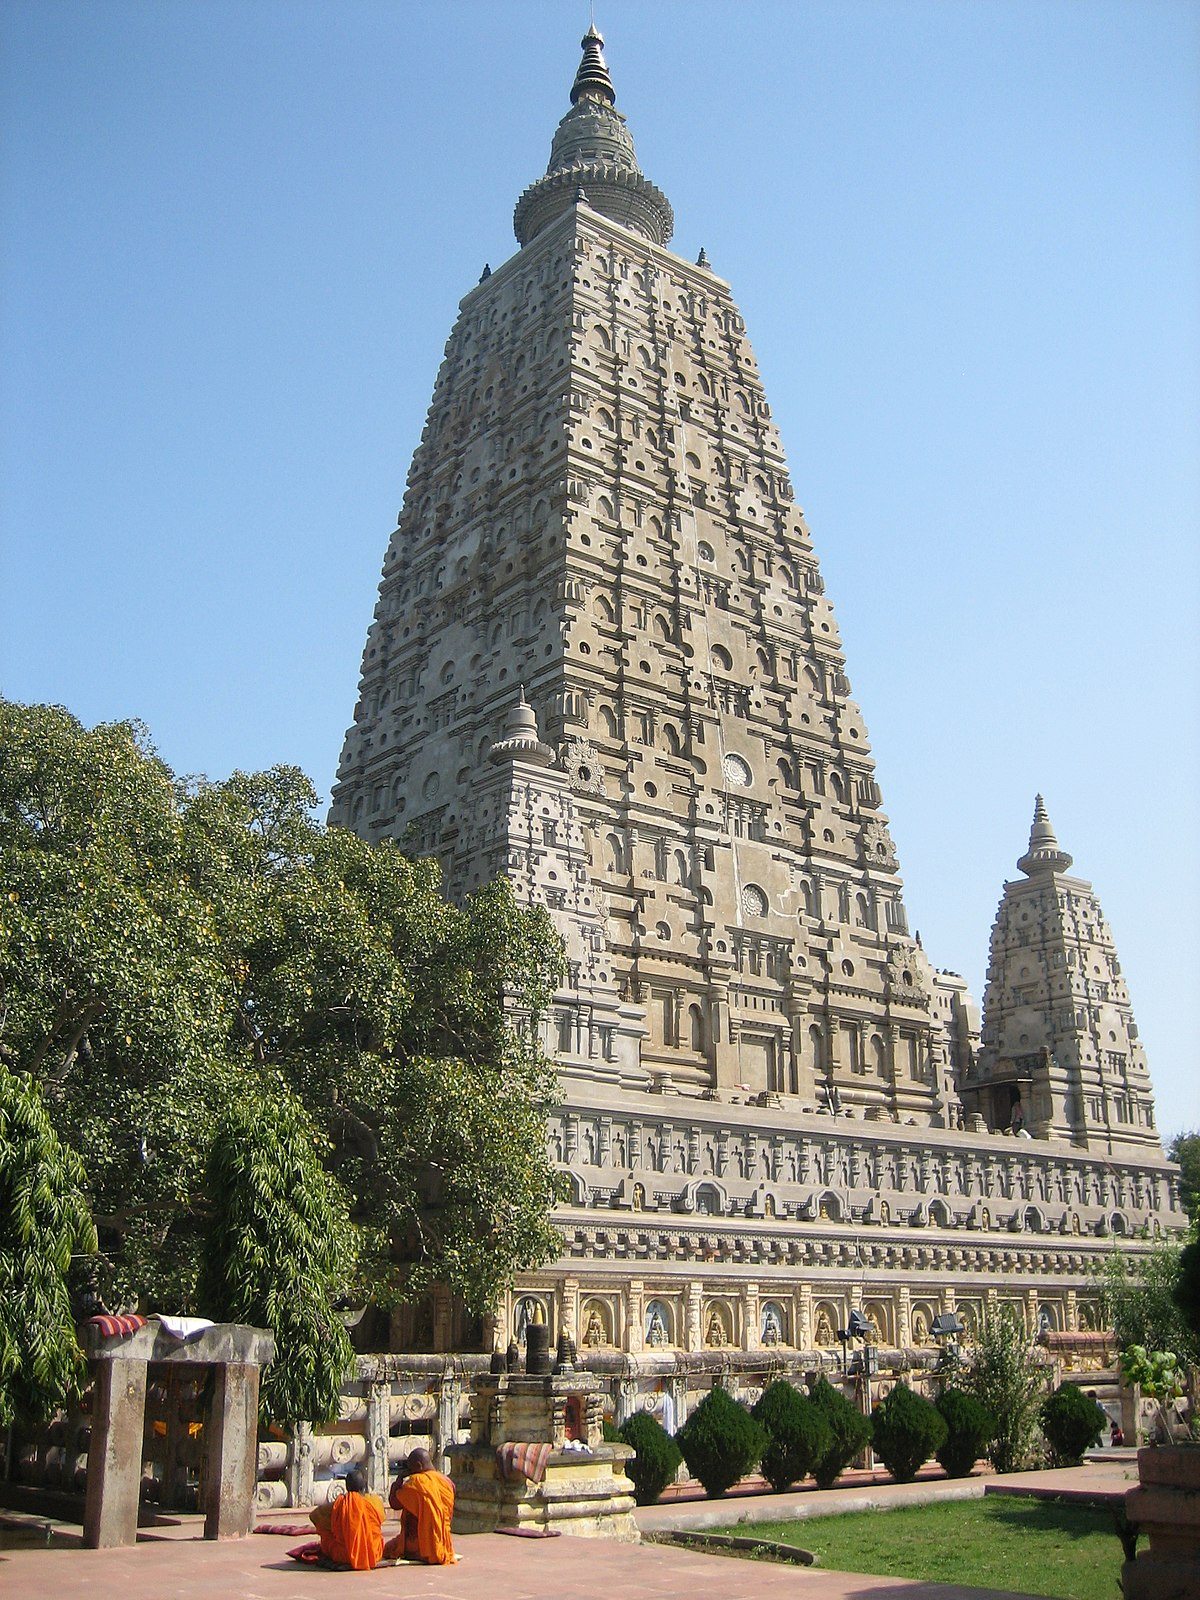 https://upload.wikimedia.org/wikipedia/commons/thumb/4/4e/Mahabodhitemple.jpg/1200px-Mahabodhitemple.jpg